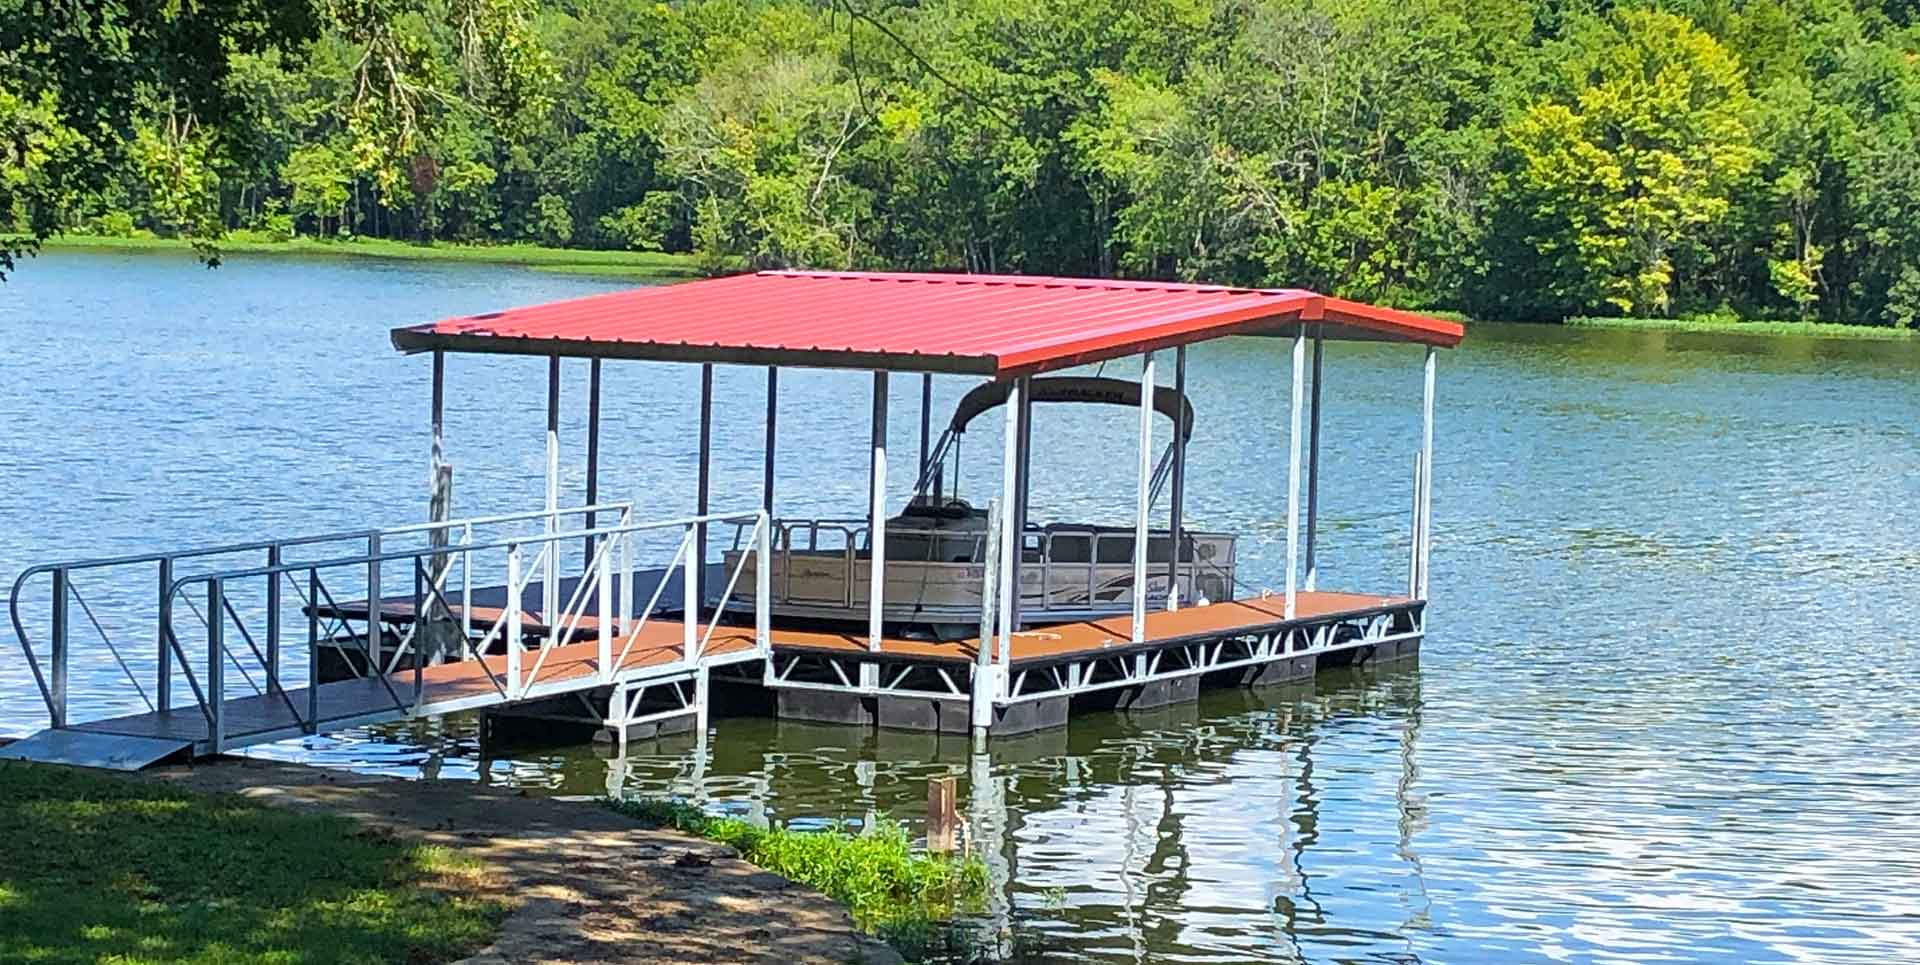 Box Truss Steel dock with red roof on river with trees in background